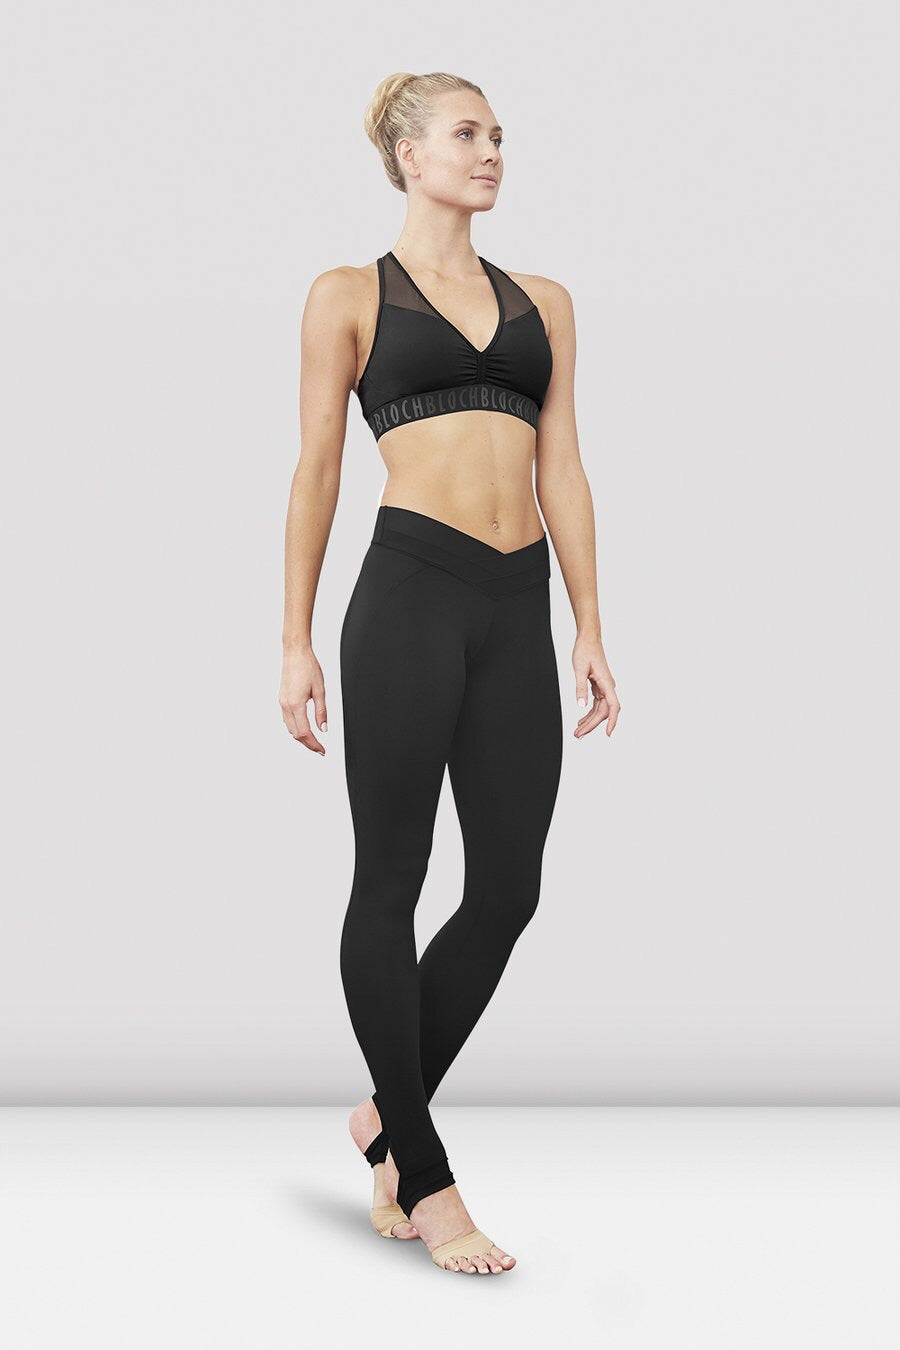 Bloch ladies Aalia Elastic Racer Back Crop Top FT5142 - Strictly Dancing